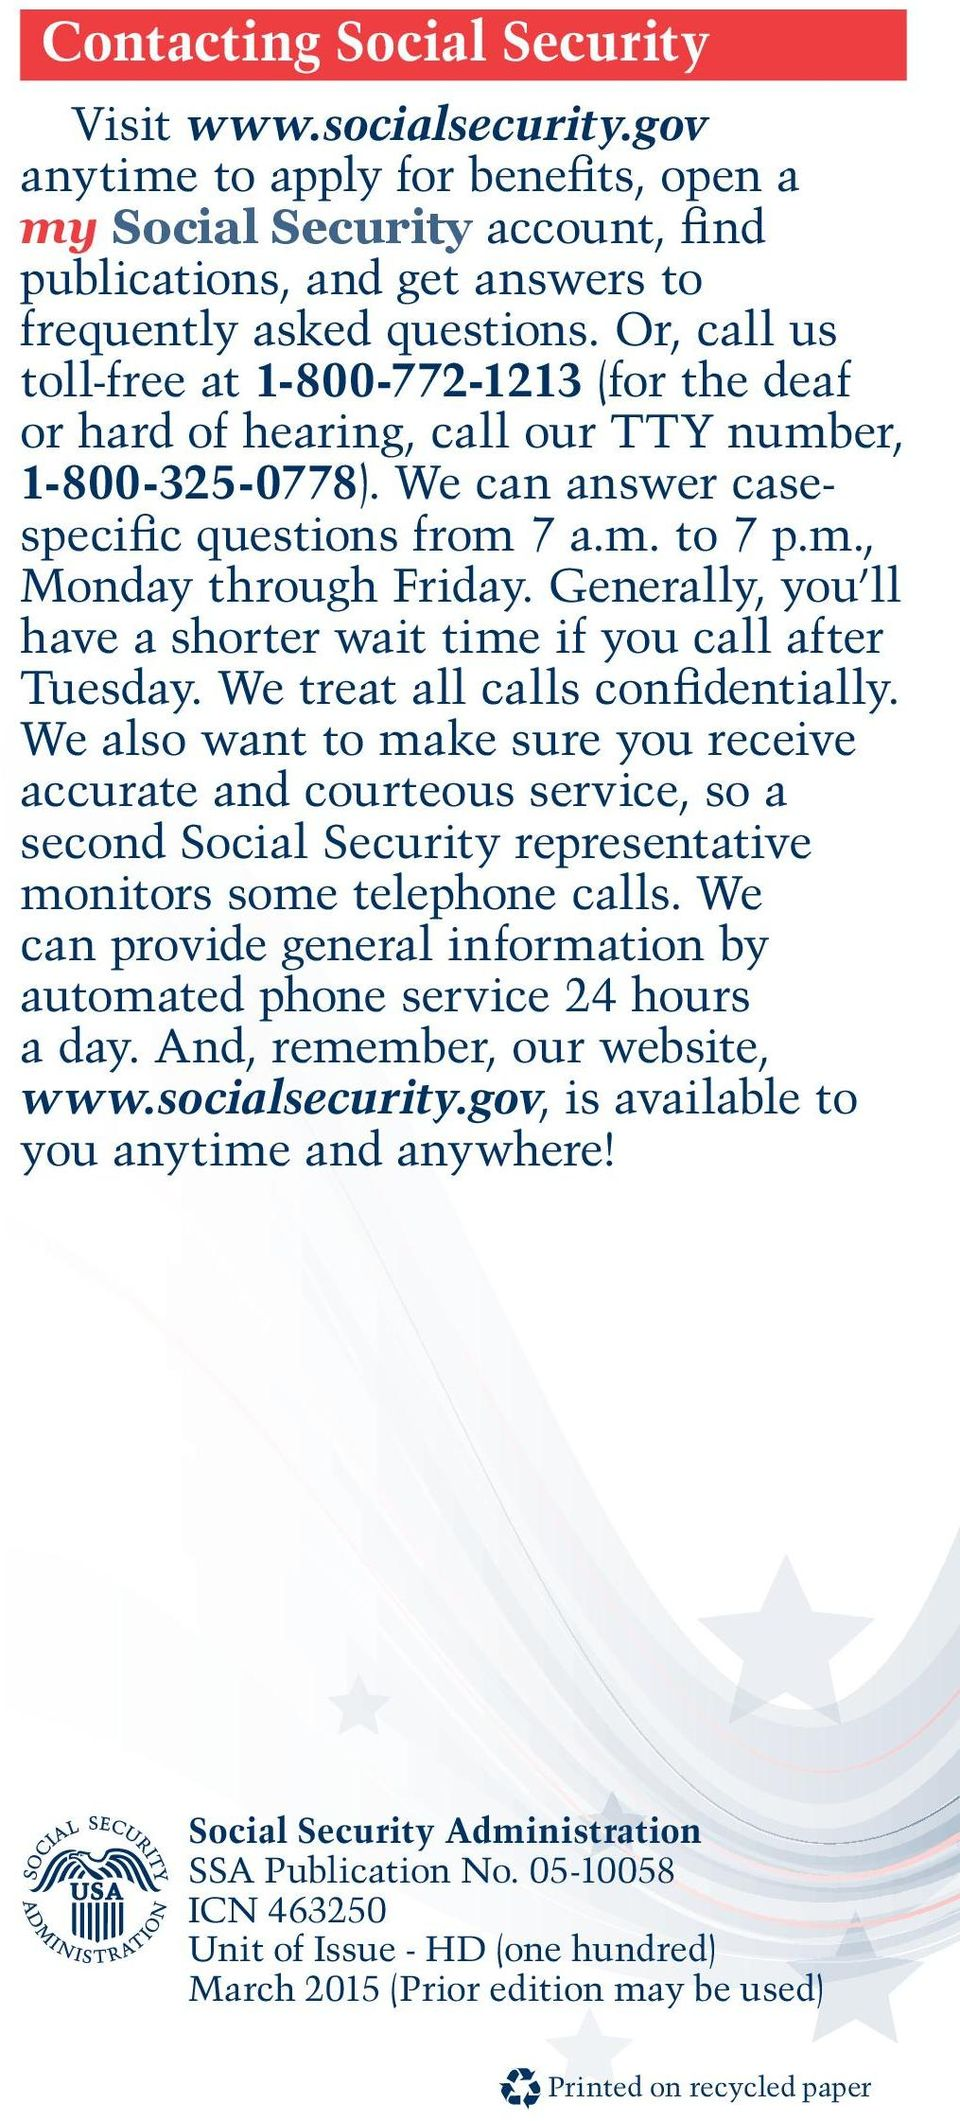 Generally, you ll have a shorter wait time if you call after Tuesday. We treat all calls confidentially.